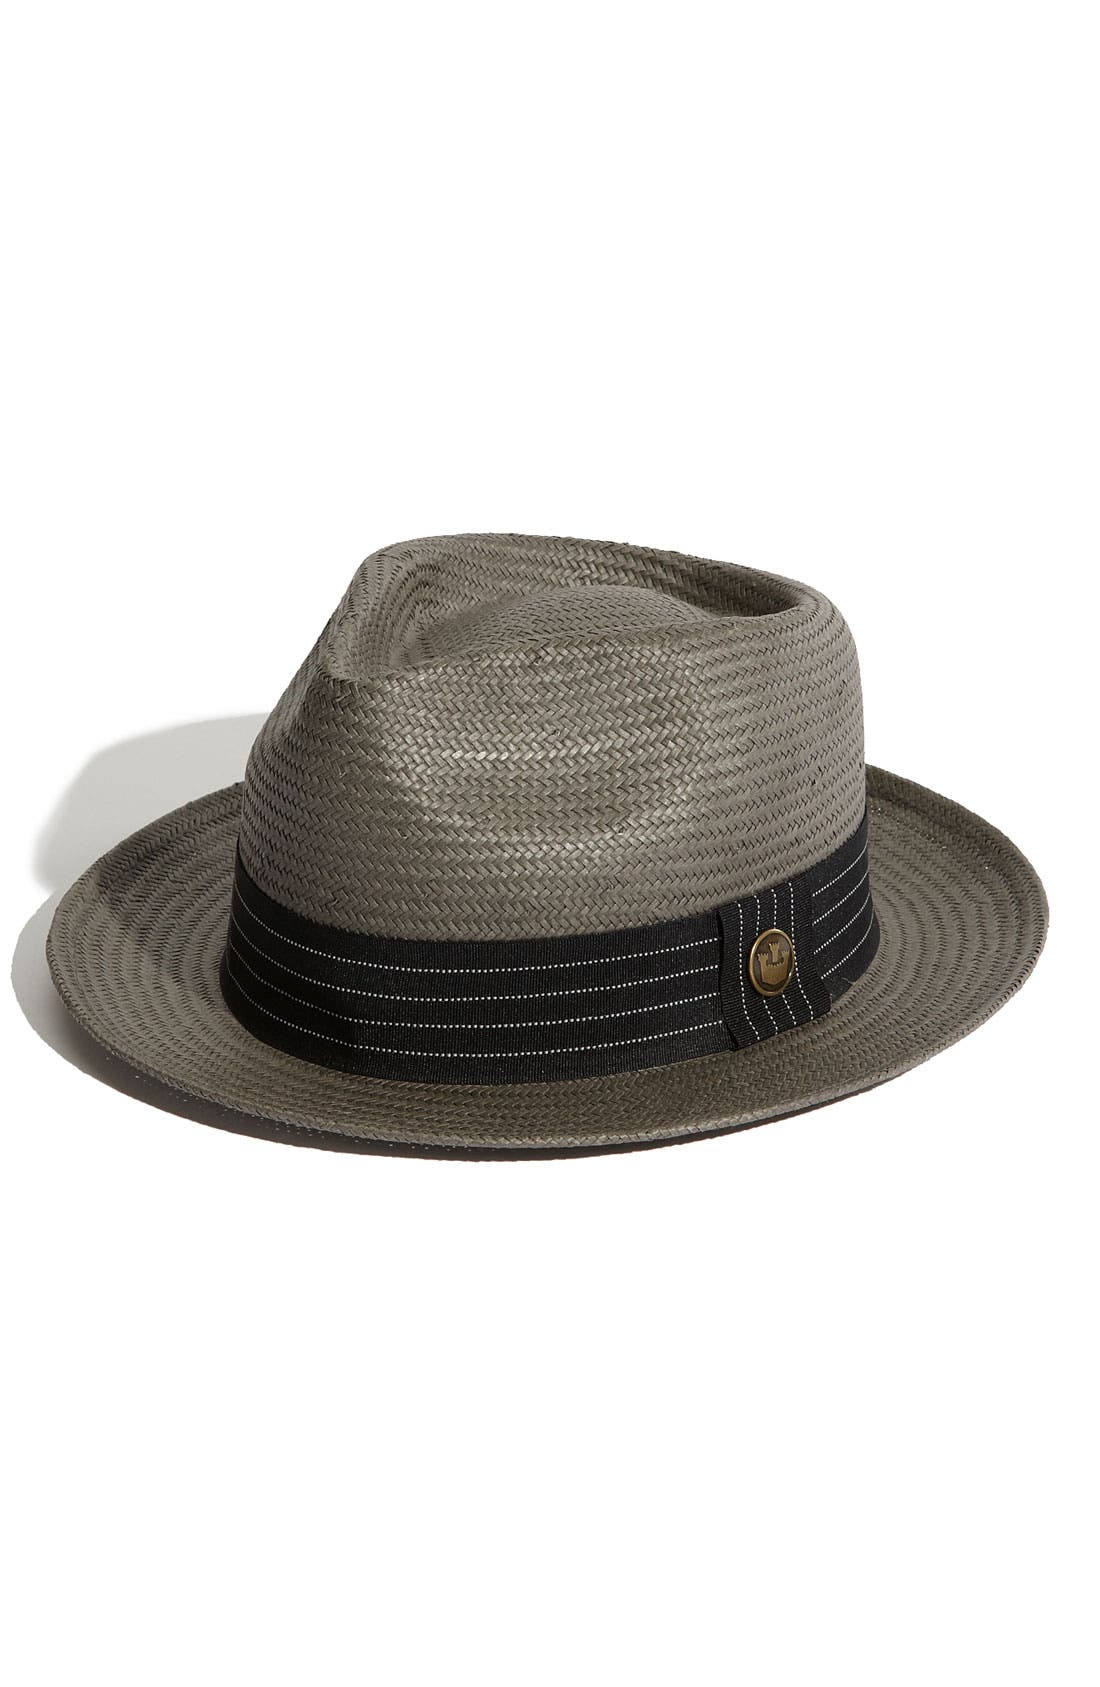 Alternate Image 1 Selected - Goorin Brothers 'Snare' Straw Fedora